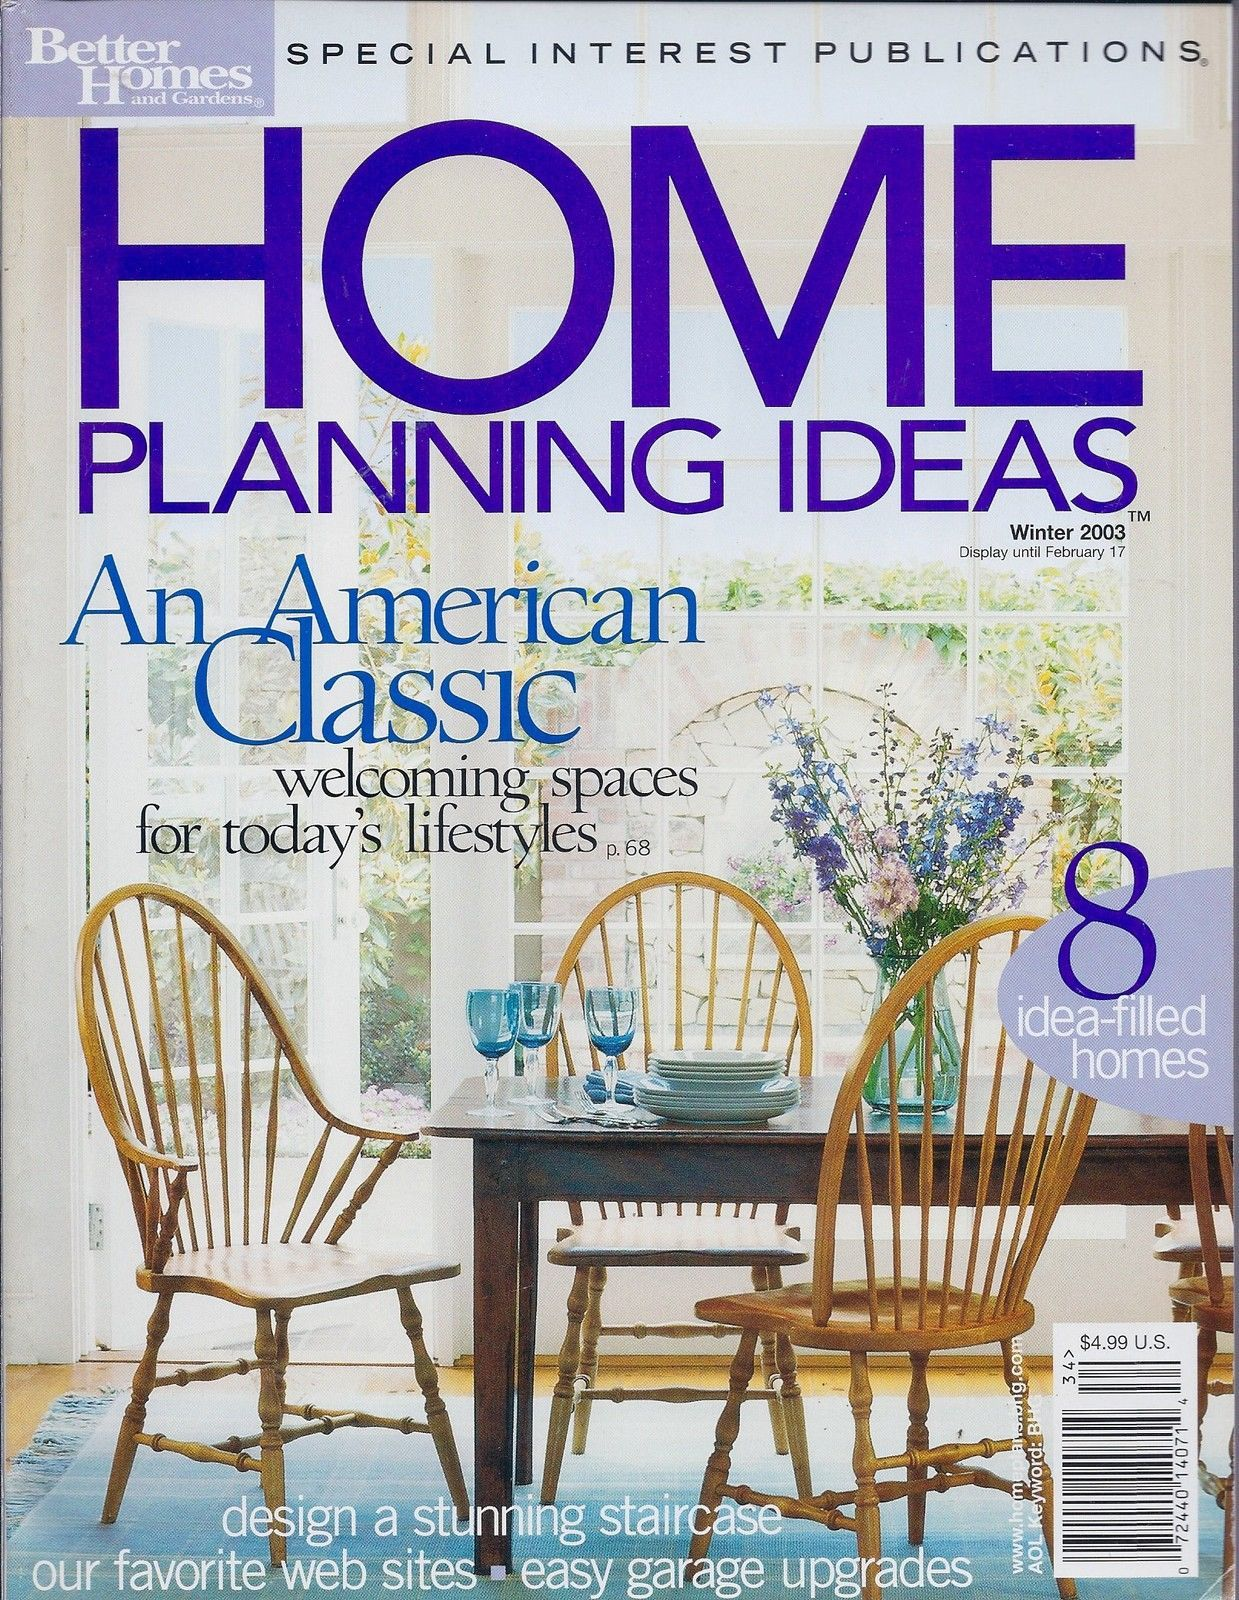 Primary image for Better Home and Garden HOME PLANNING IDEAS Magazine / Winter 2003